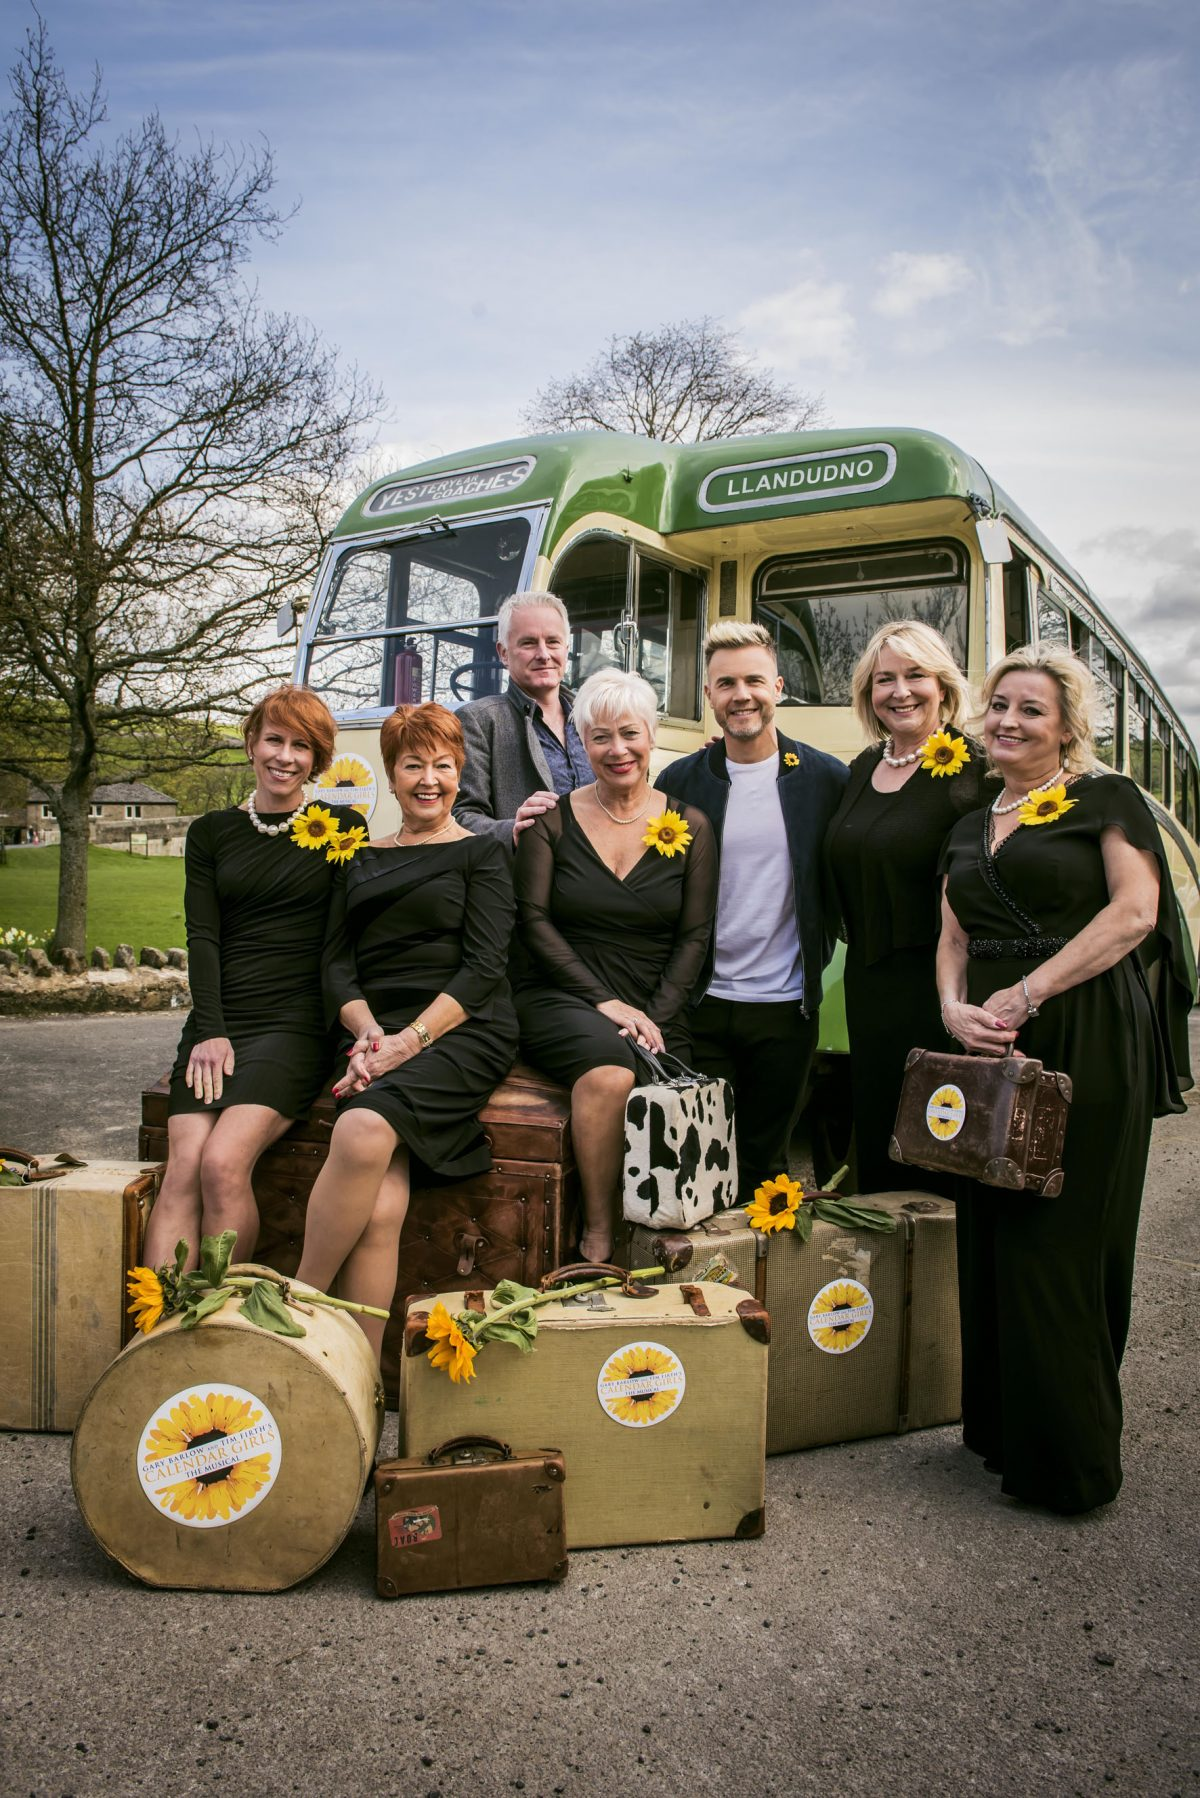 It's a story of shedding inhibitions, real British girl power and turning tragedy into triumph.